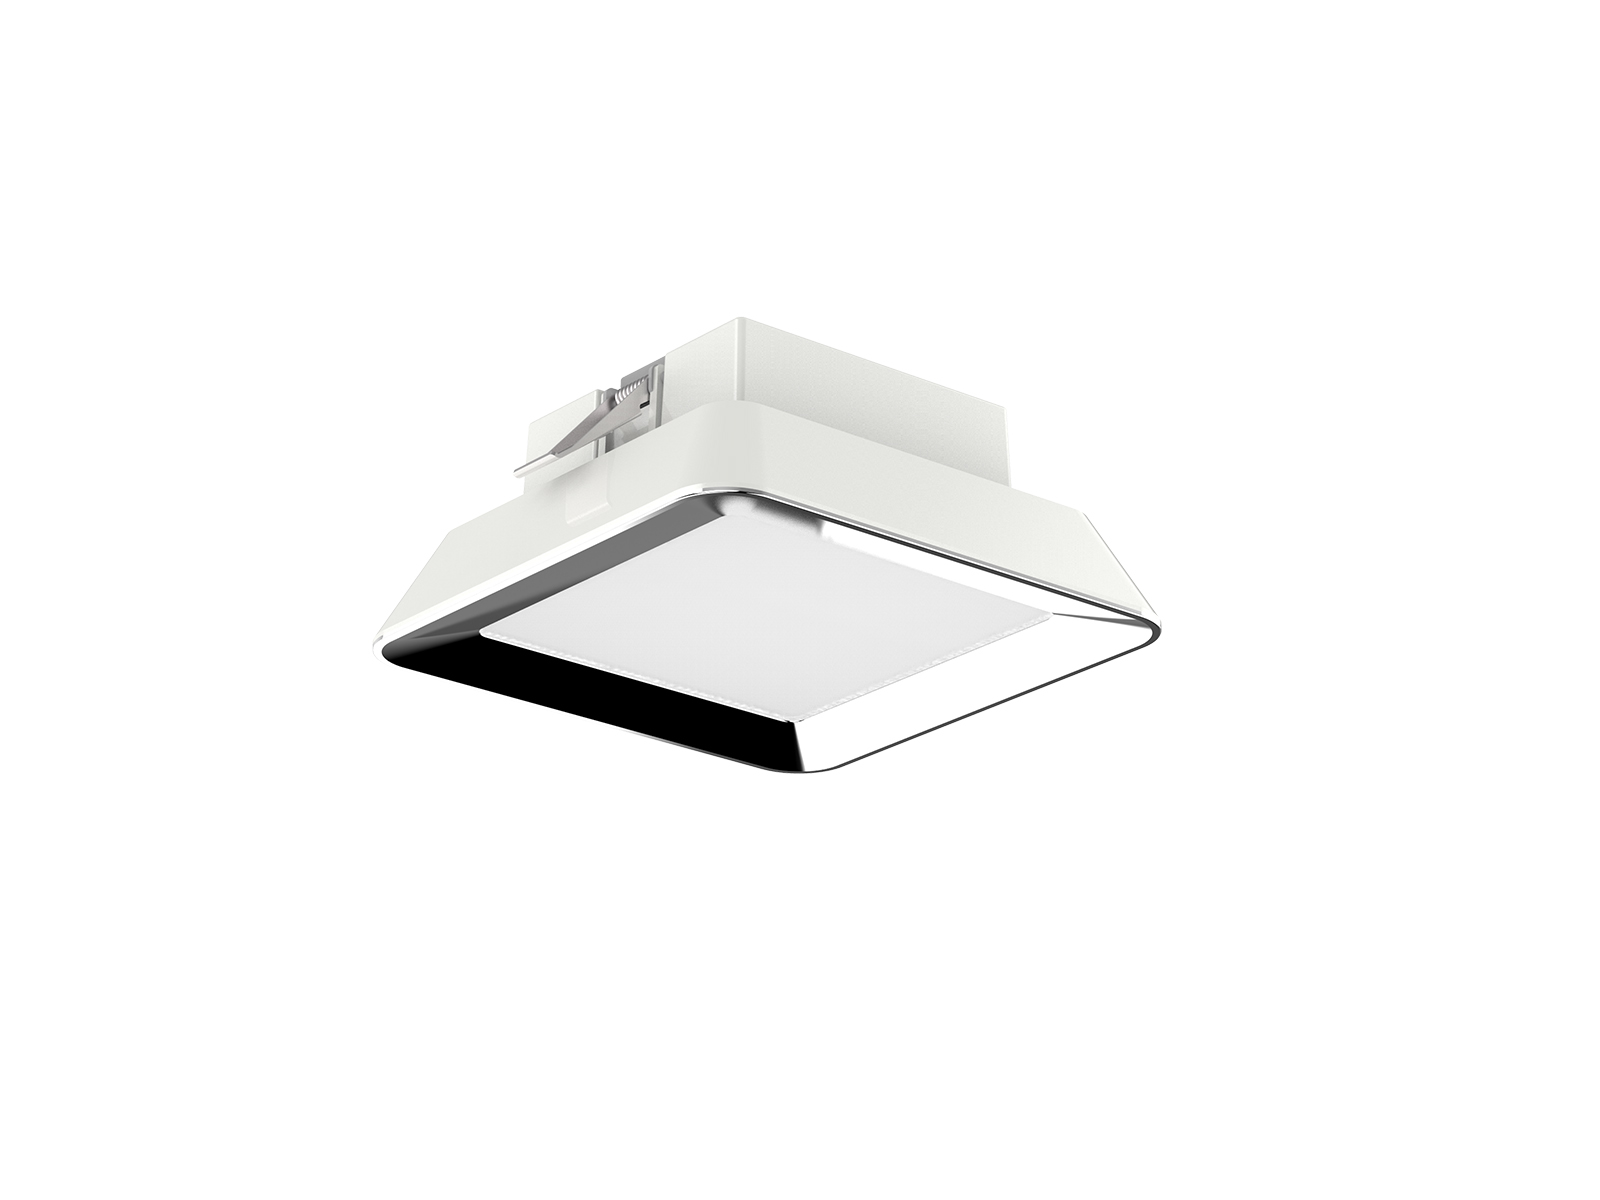 4 Square Recessed Lighting Fixtures